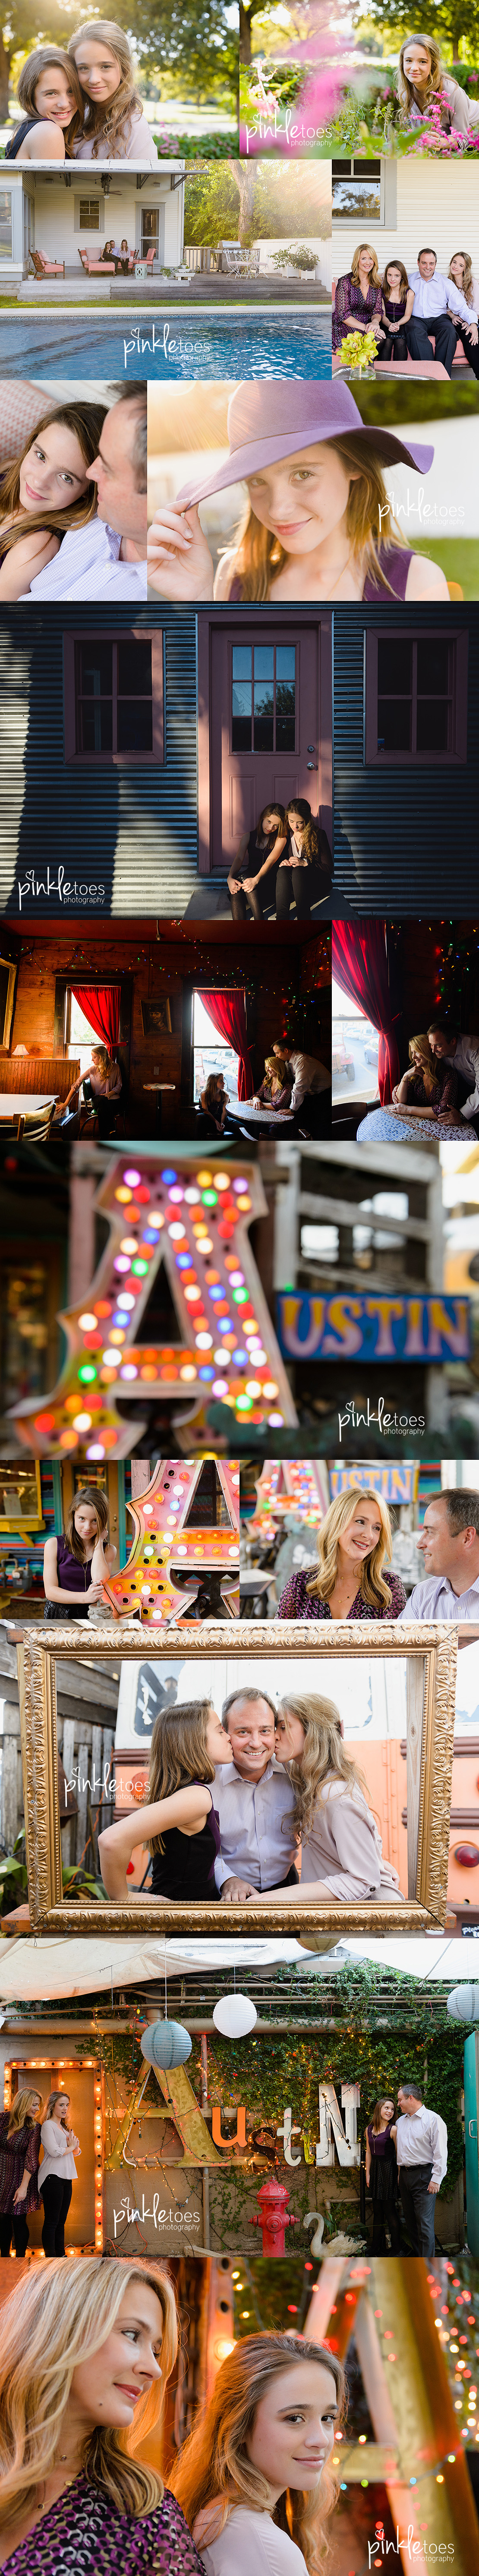 urban-austin-family-photo-shoot-spider-house-cafe-downtown-austin-senior-photographer